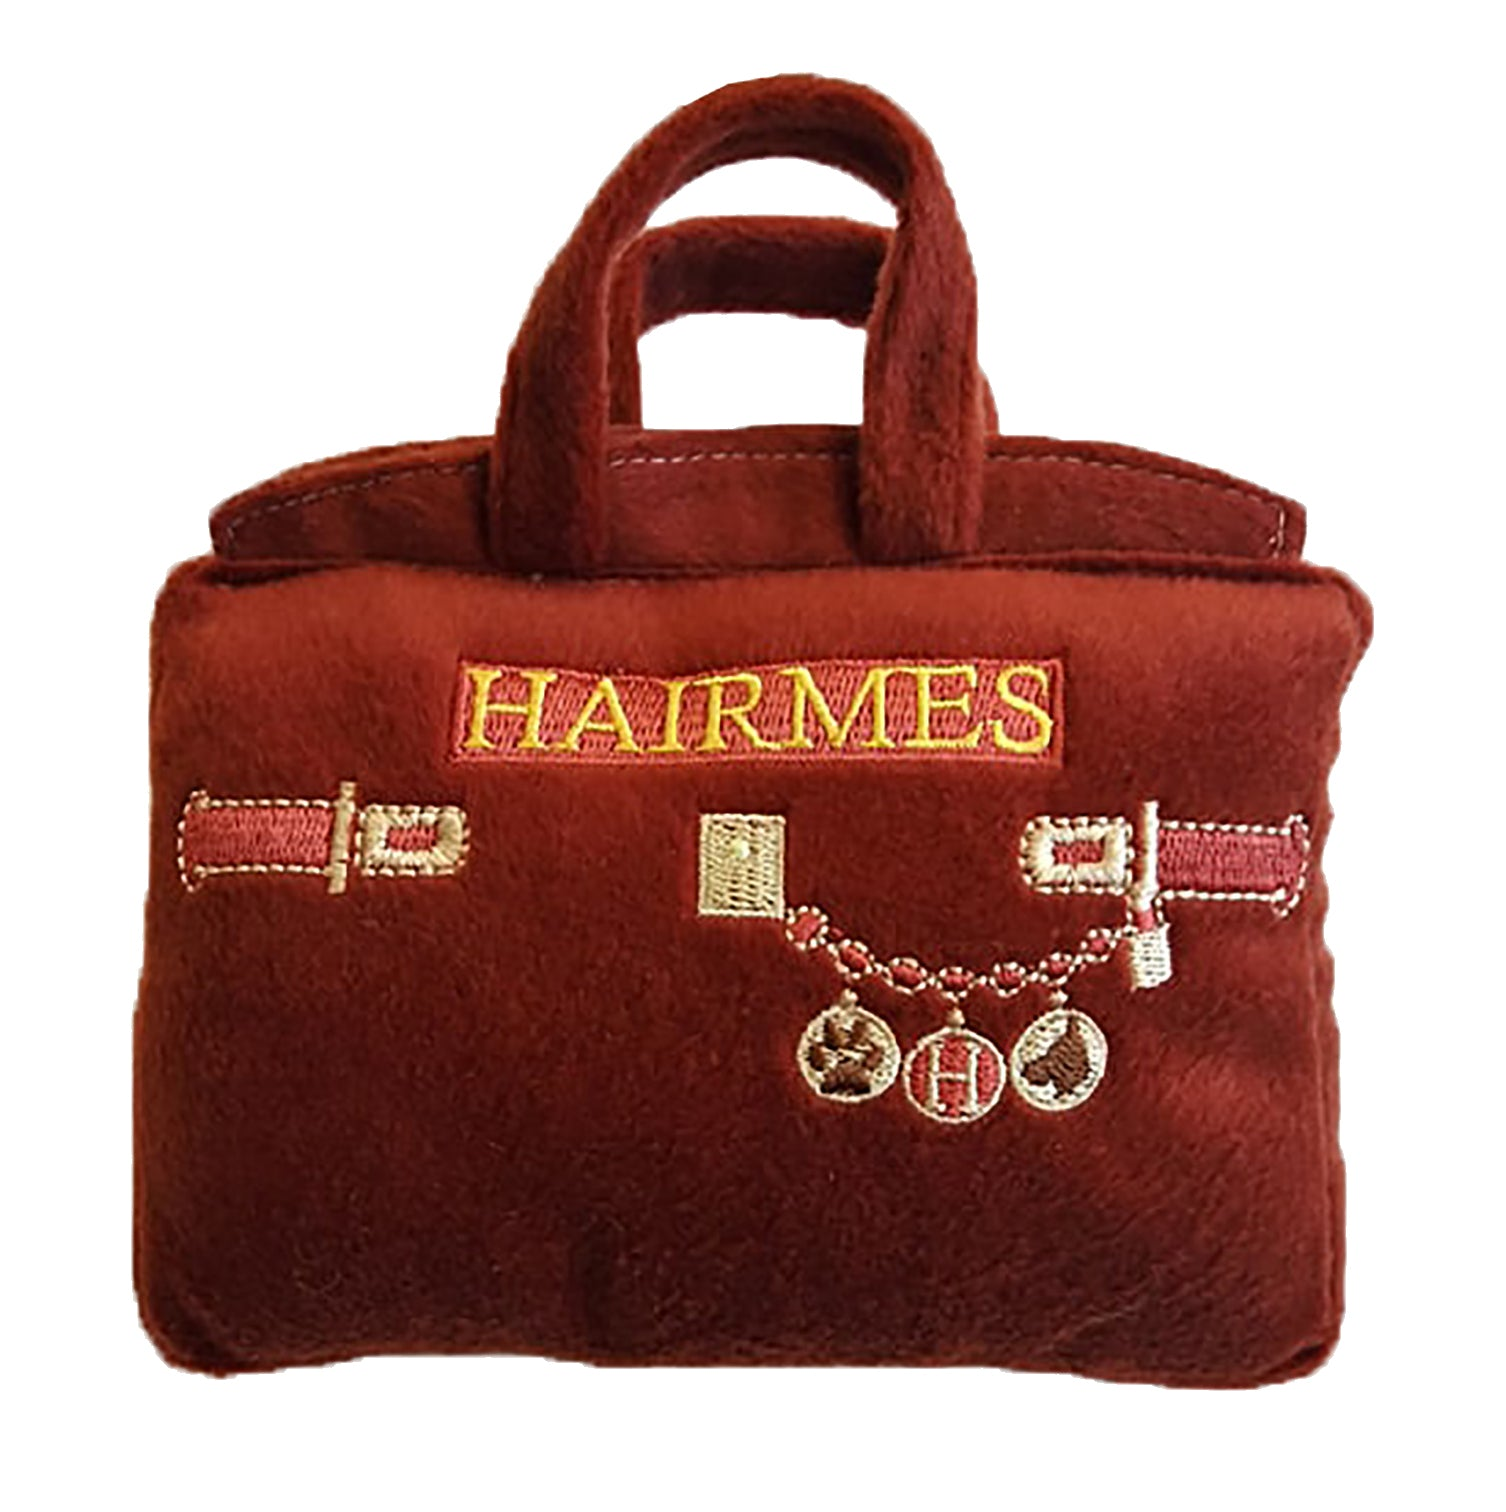 Hairmes Purse Dog Toy - North Shore Saddlery